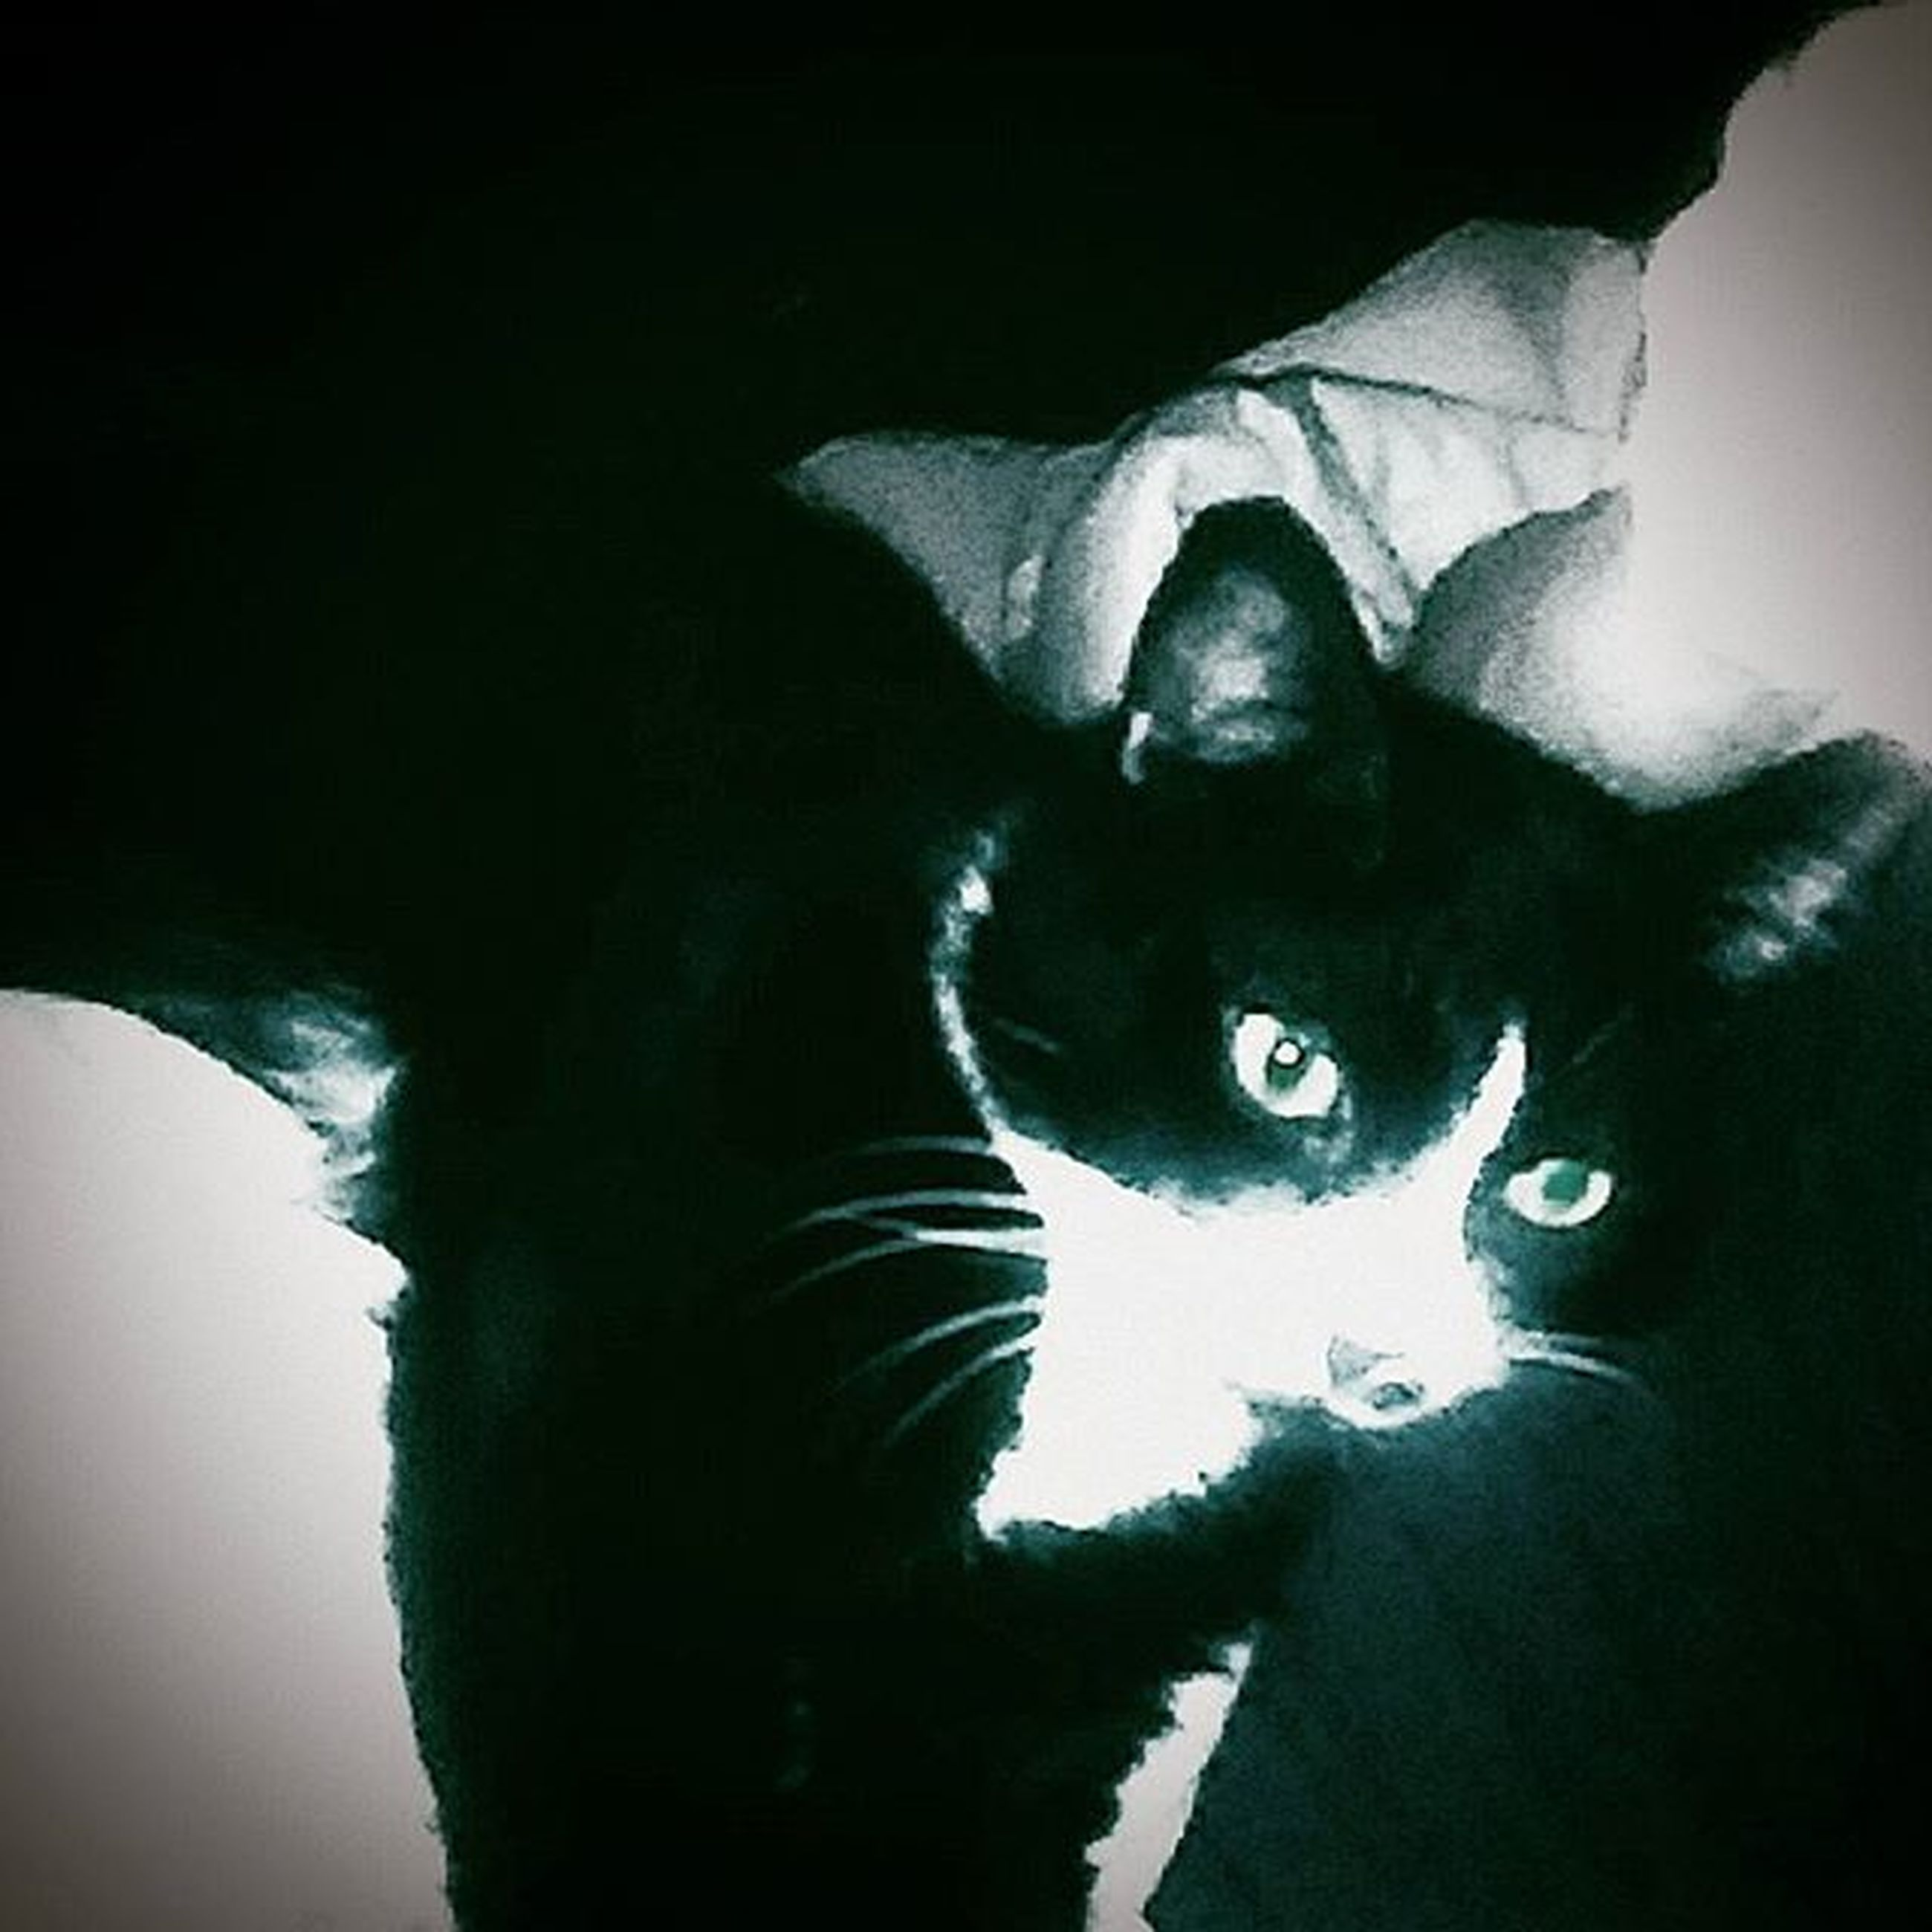 pets, domestic animals, domestic cat, one animal, cat, animal themes, mammal, indoors, feline, looking at camera, portrait, whisker, staring, black color, relaxation, animal head, home interior, close-up, alertness, no people